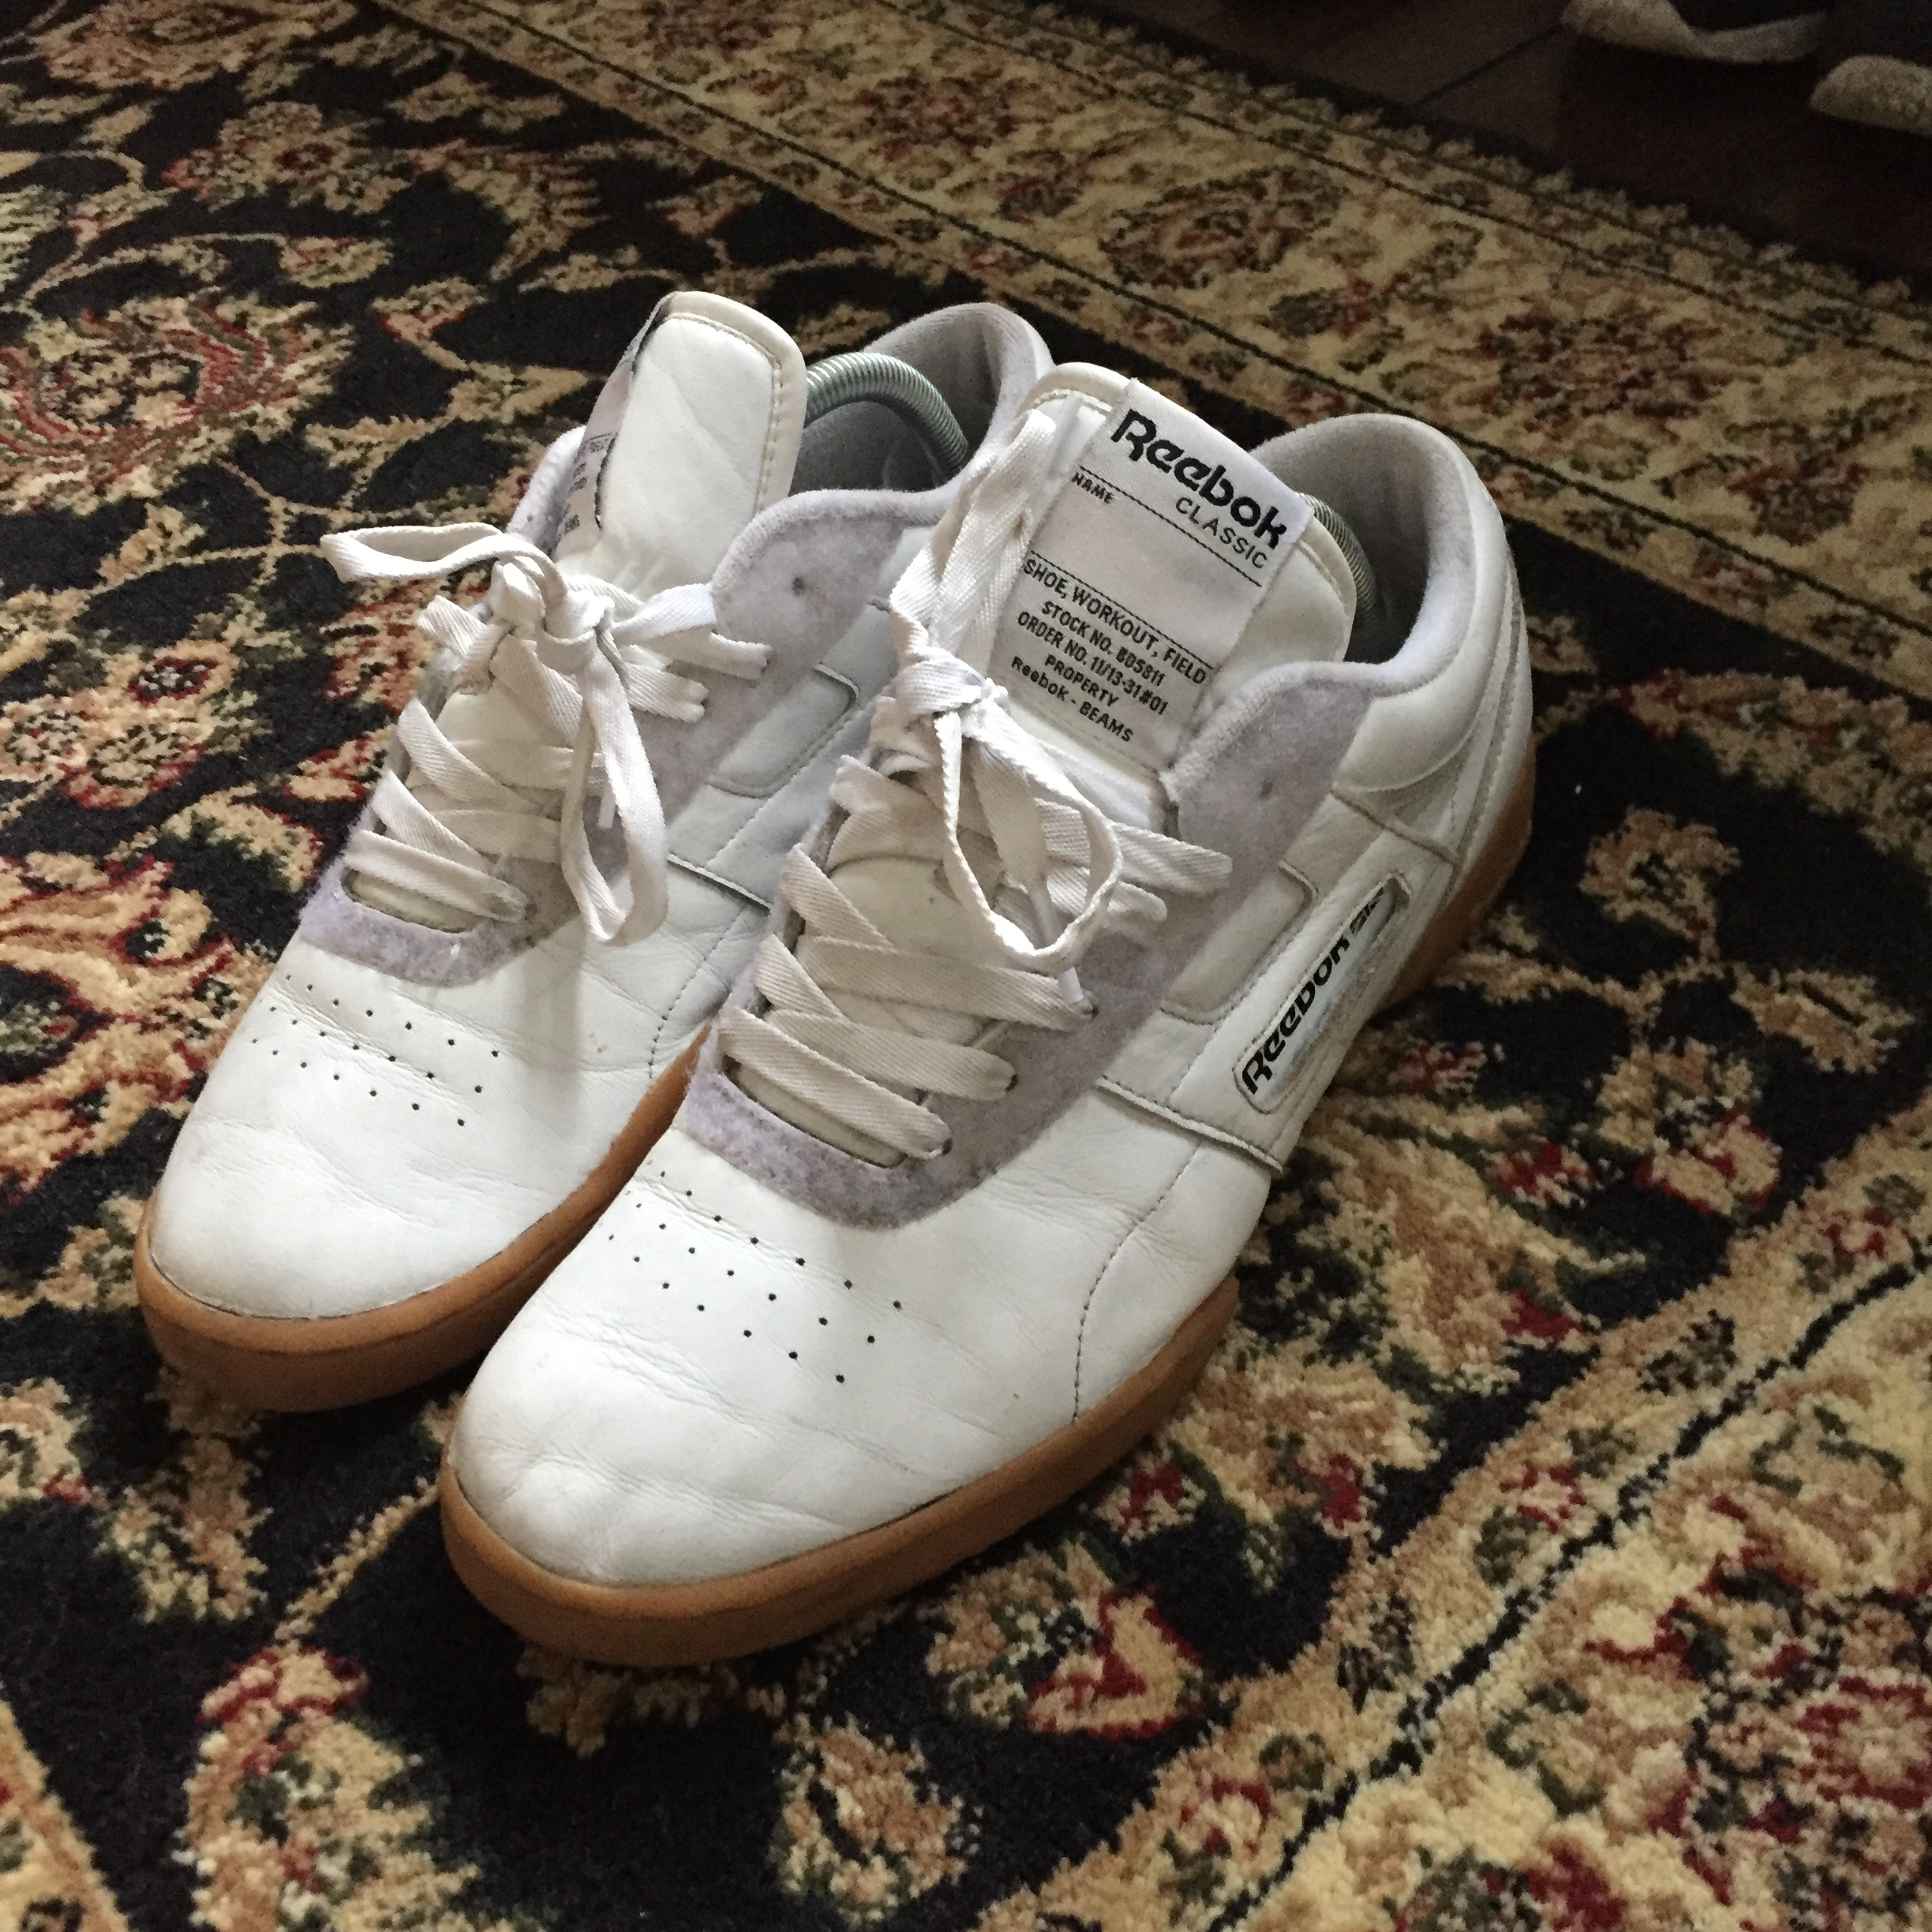 superior quality 4c420 c9ad7 Reebok Classic x Beams Workout UK8 7/10 £45 posted - Depop